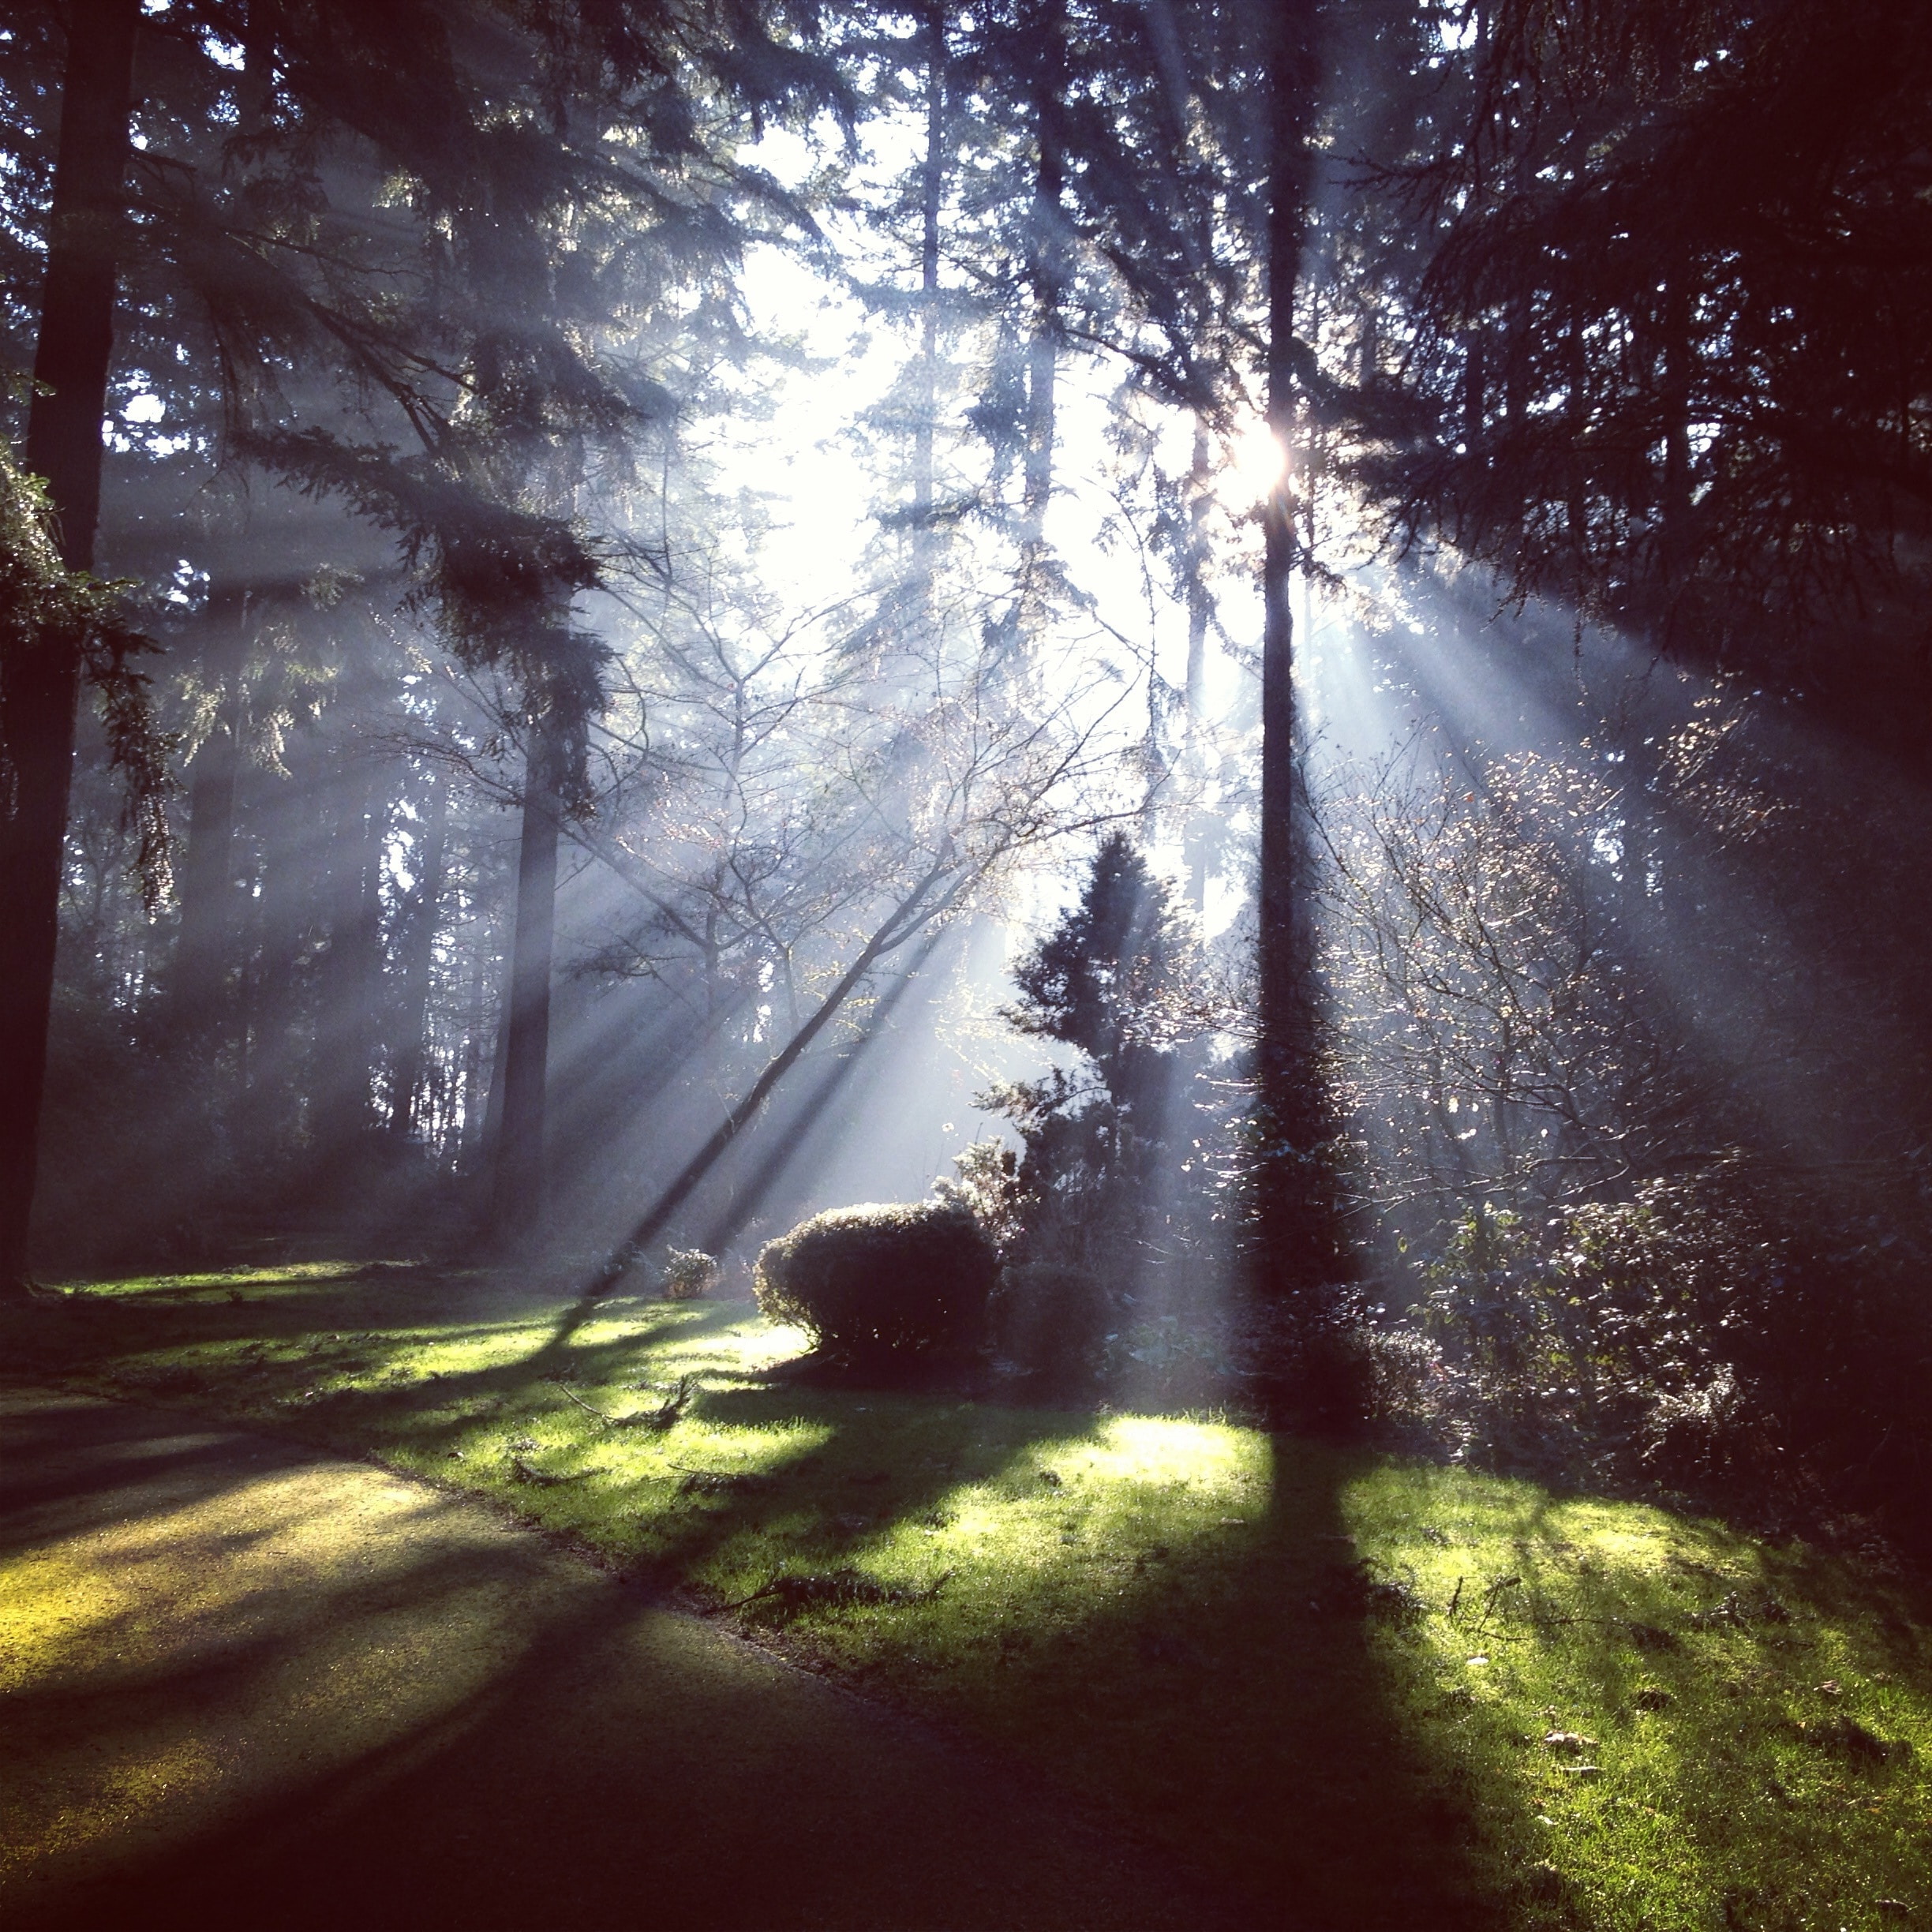 A path surrounded by large evergreen trees with bright light shining through in crepuscular rays